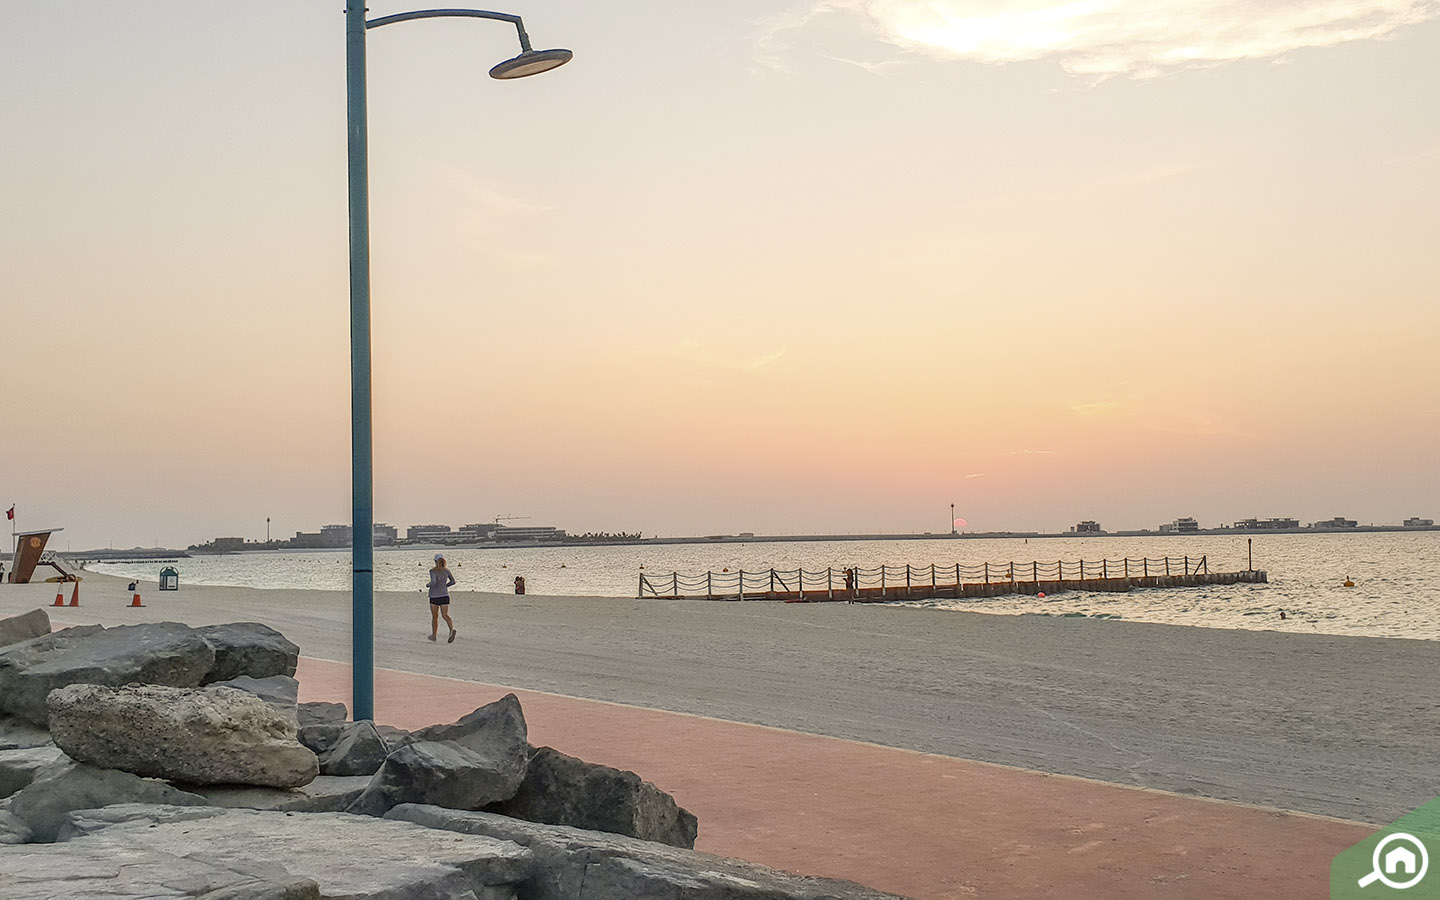 Jumeirah Beach cycling path